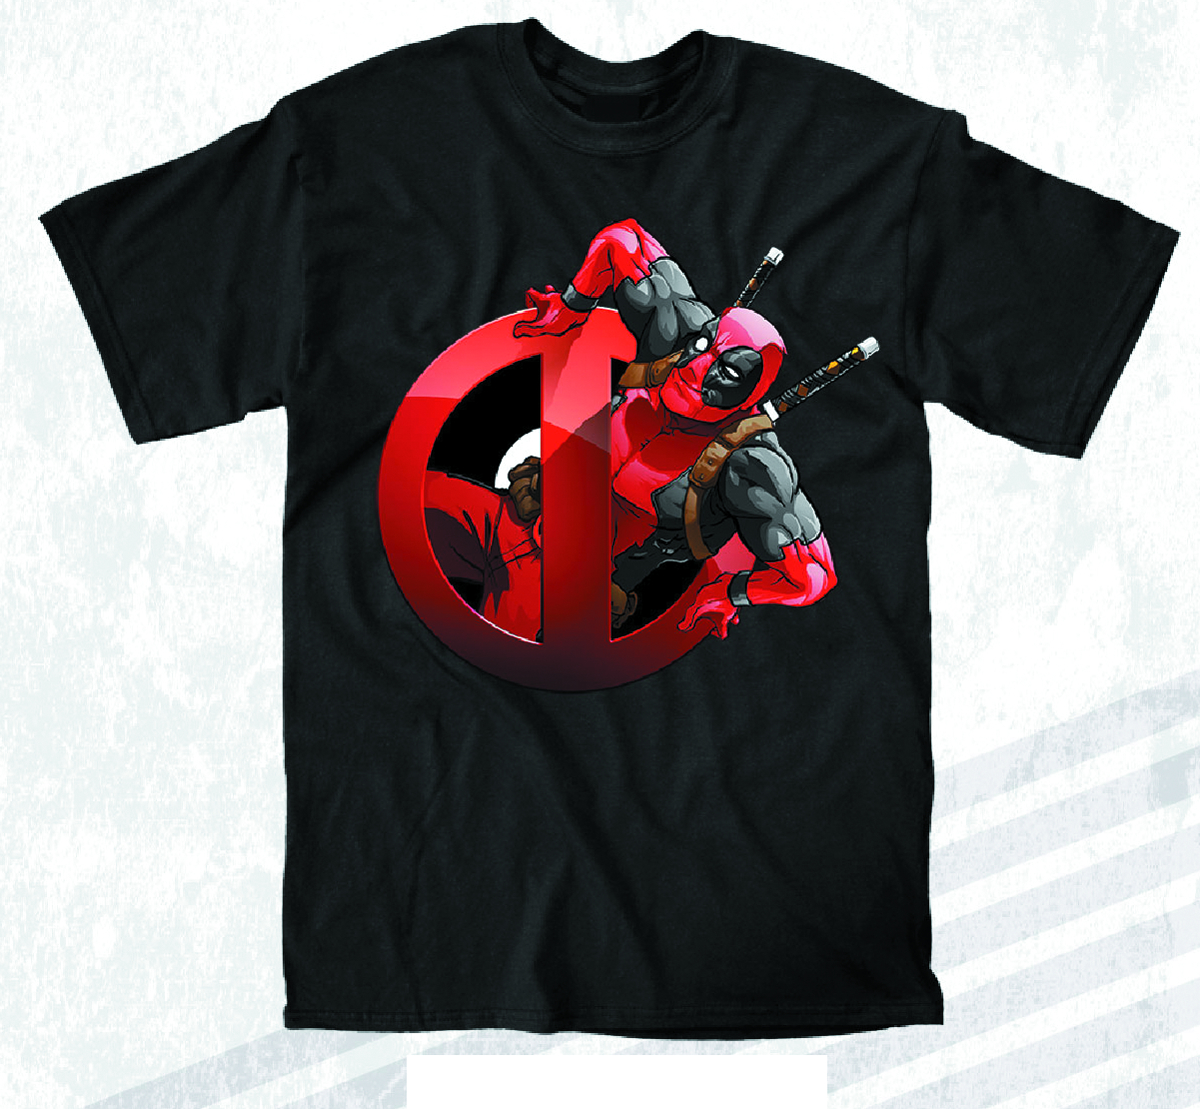 DEADPOOL HELLO LADIES PX BLK T/S LG